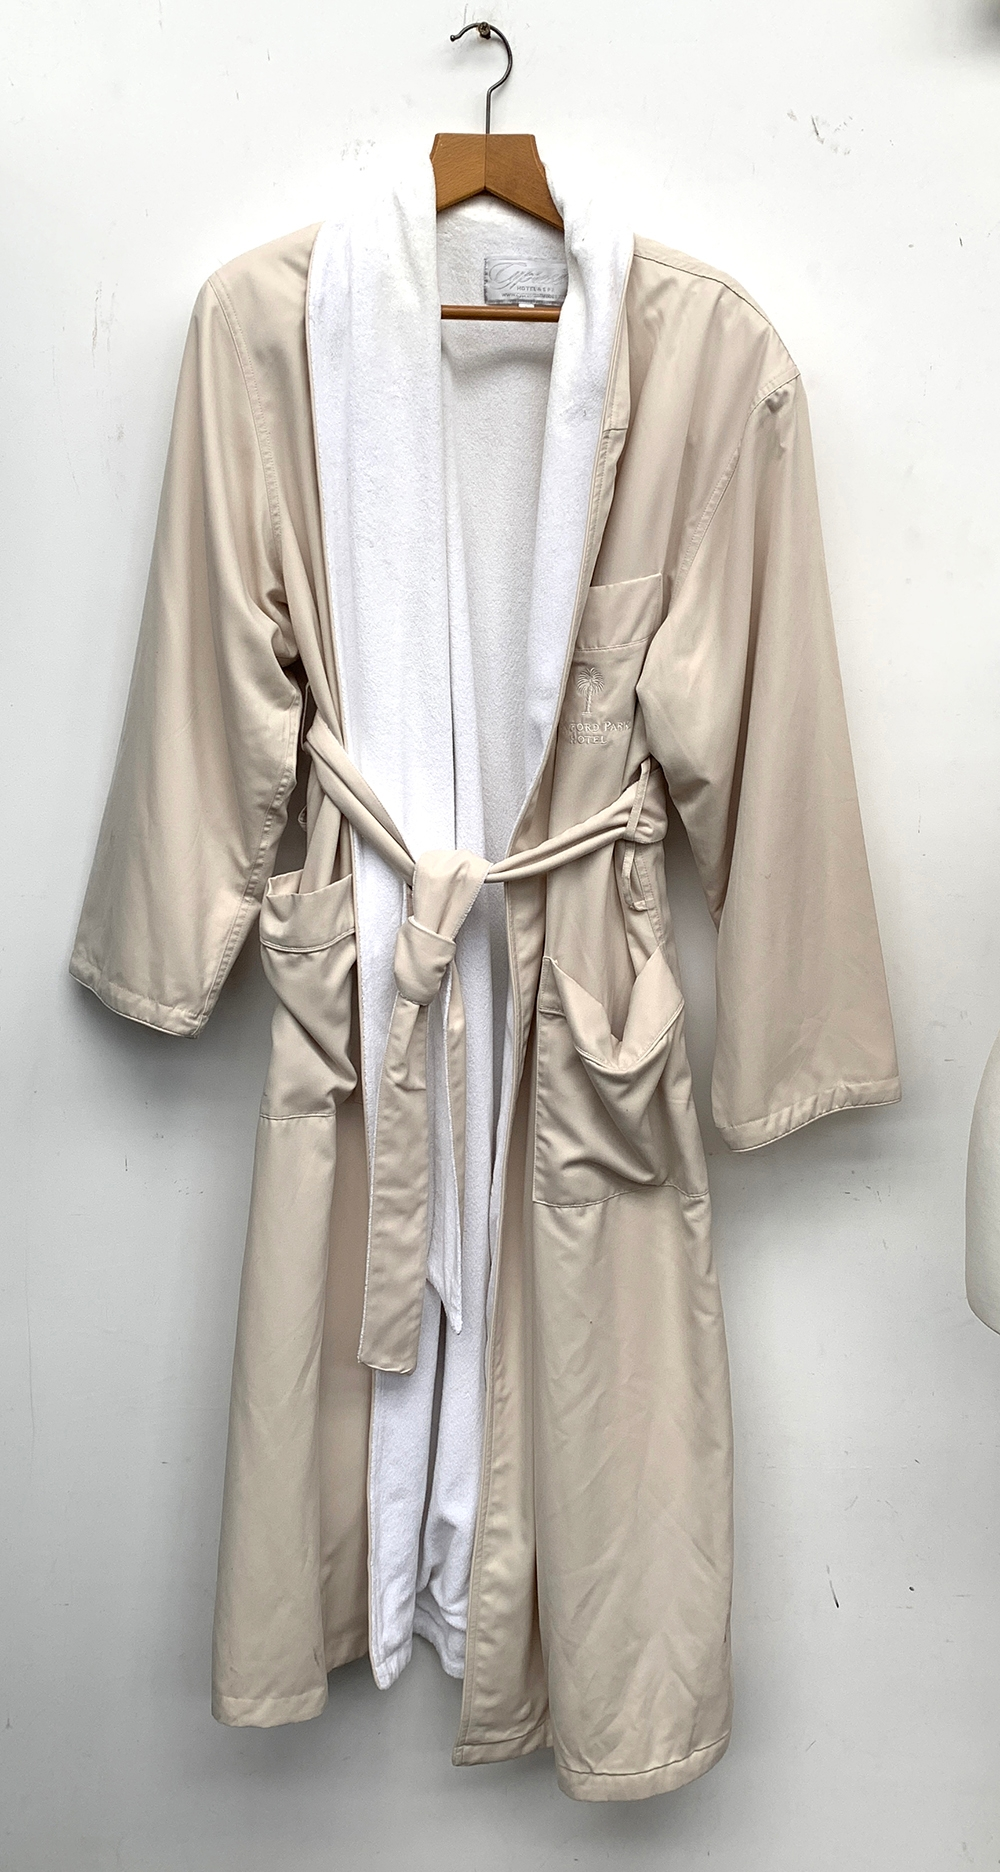 A towelling bathrobe from the Standford Park Hotel, California